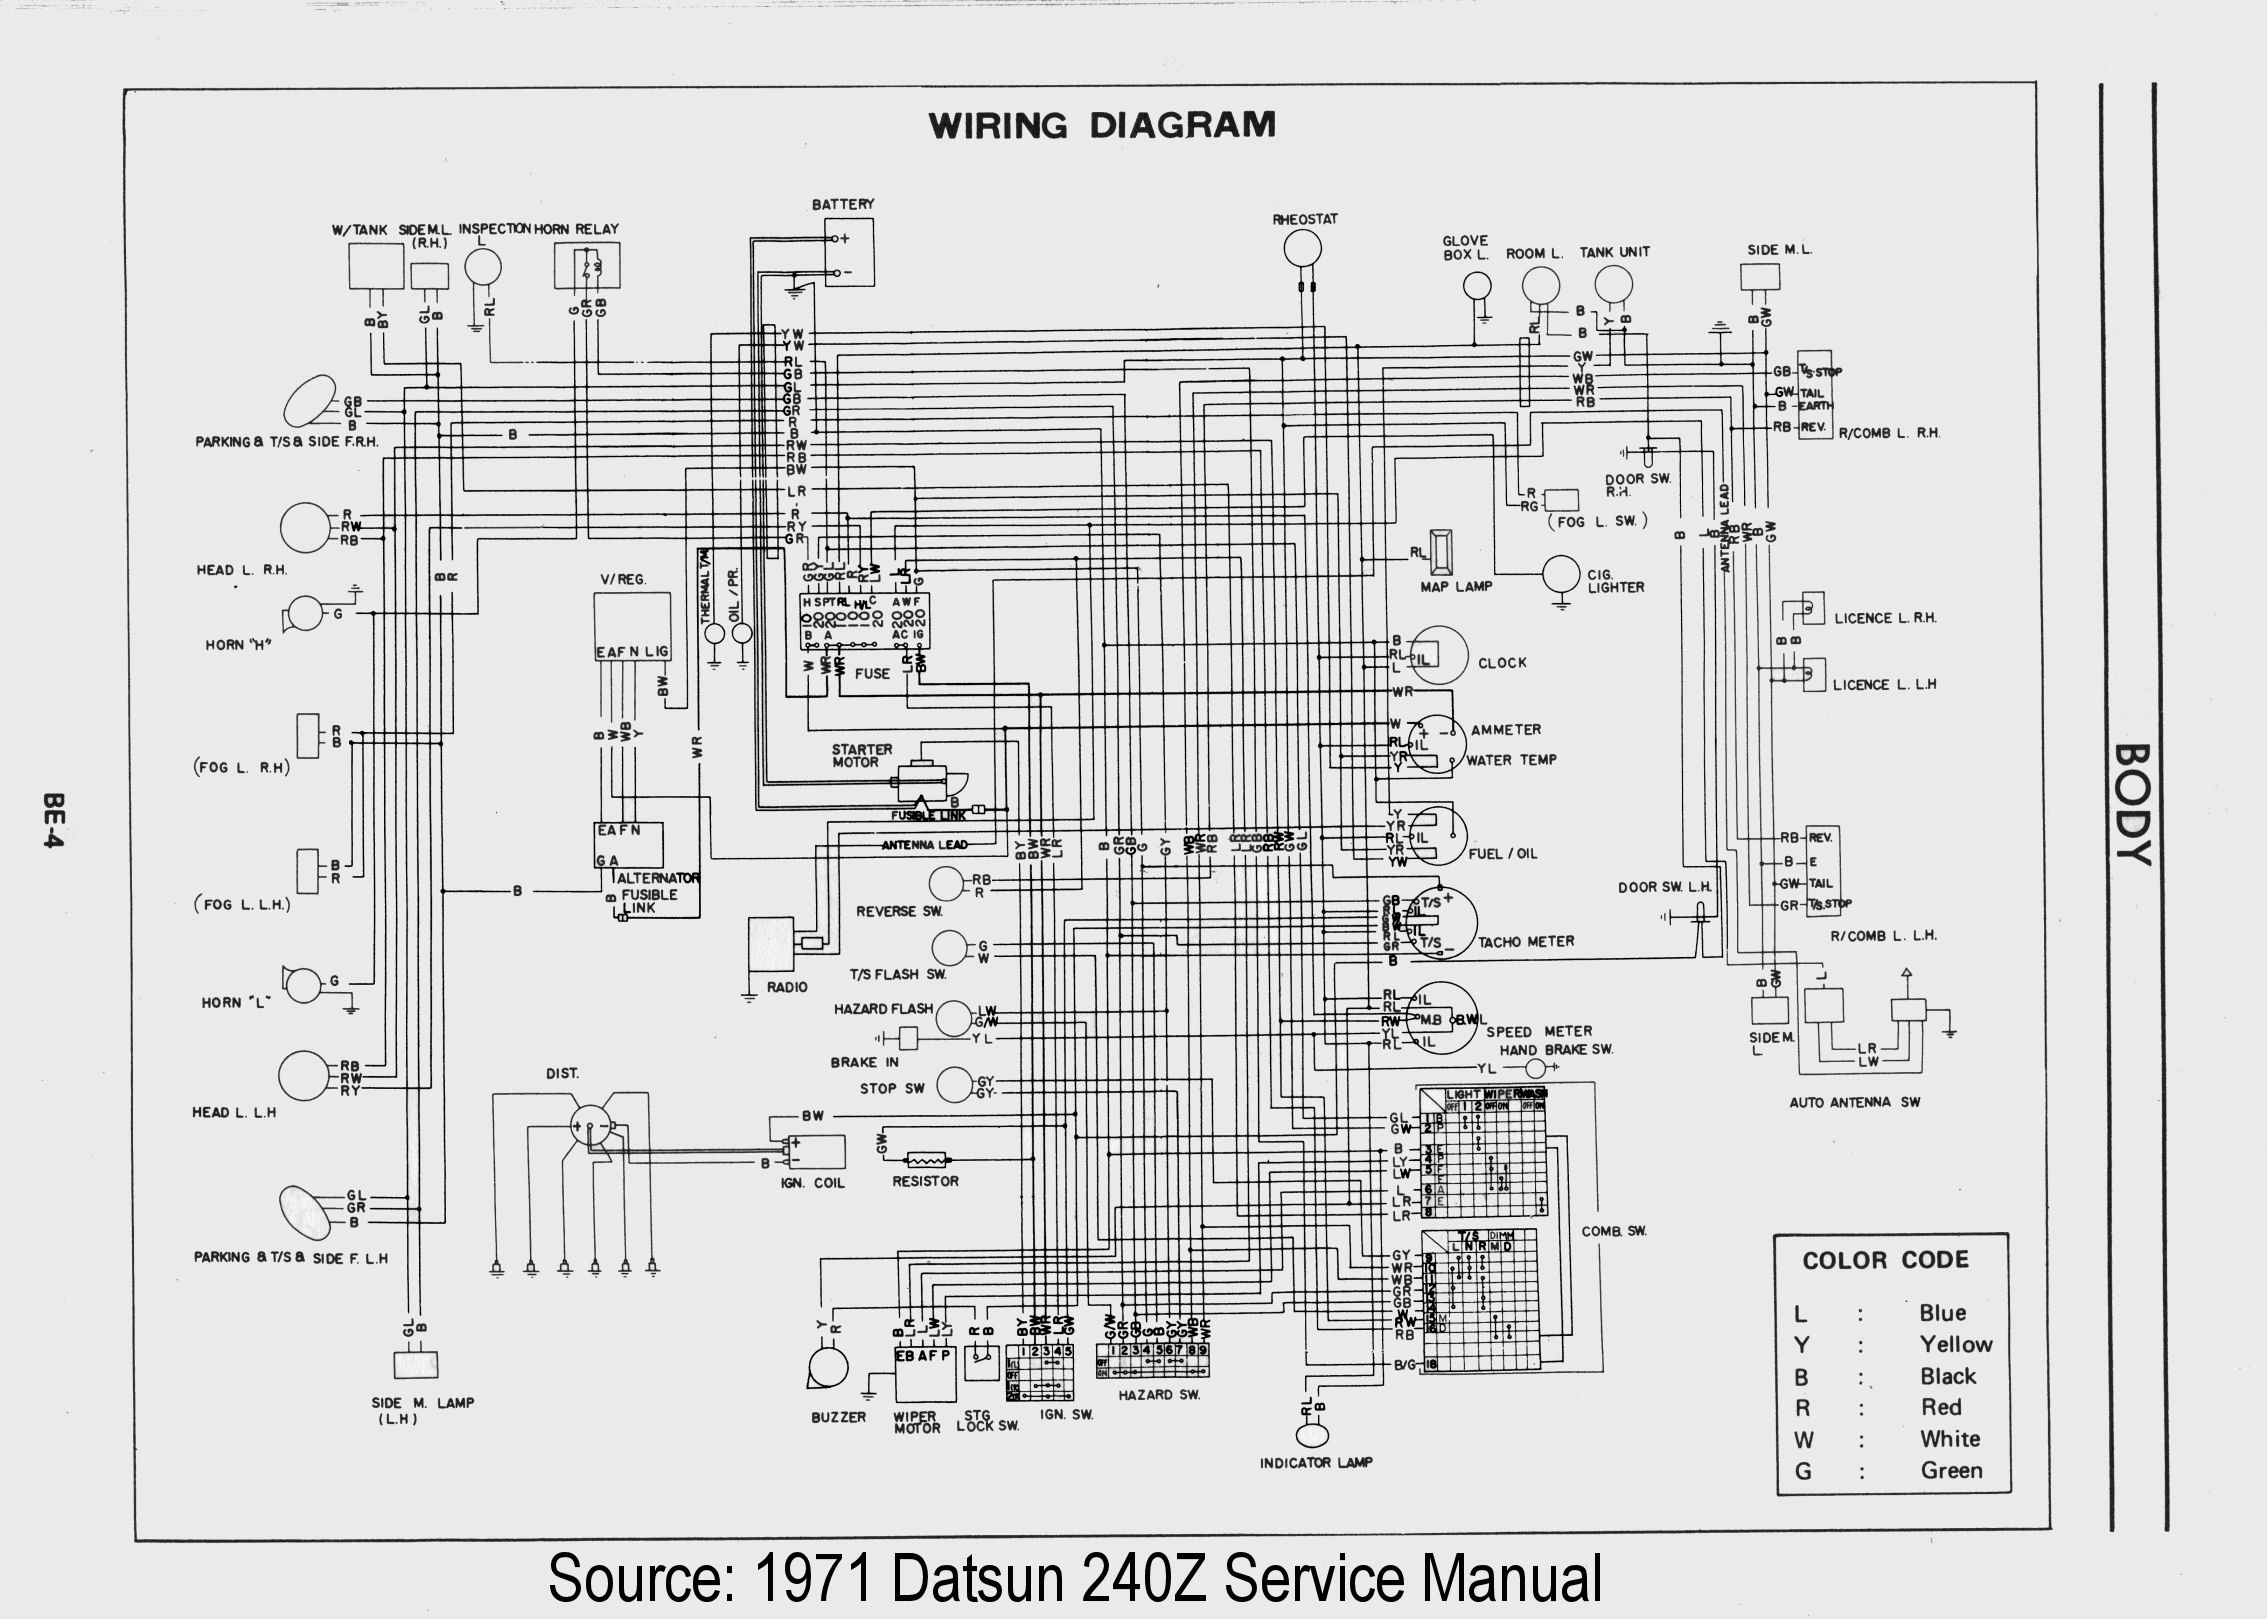 370z Engine Harness Diagram Not Lossing Wiring Nismo 1991 Nissan 300zx Radio Schematic Name Rh 20 4 Systembeimroulette De Turbo